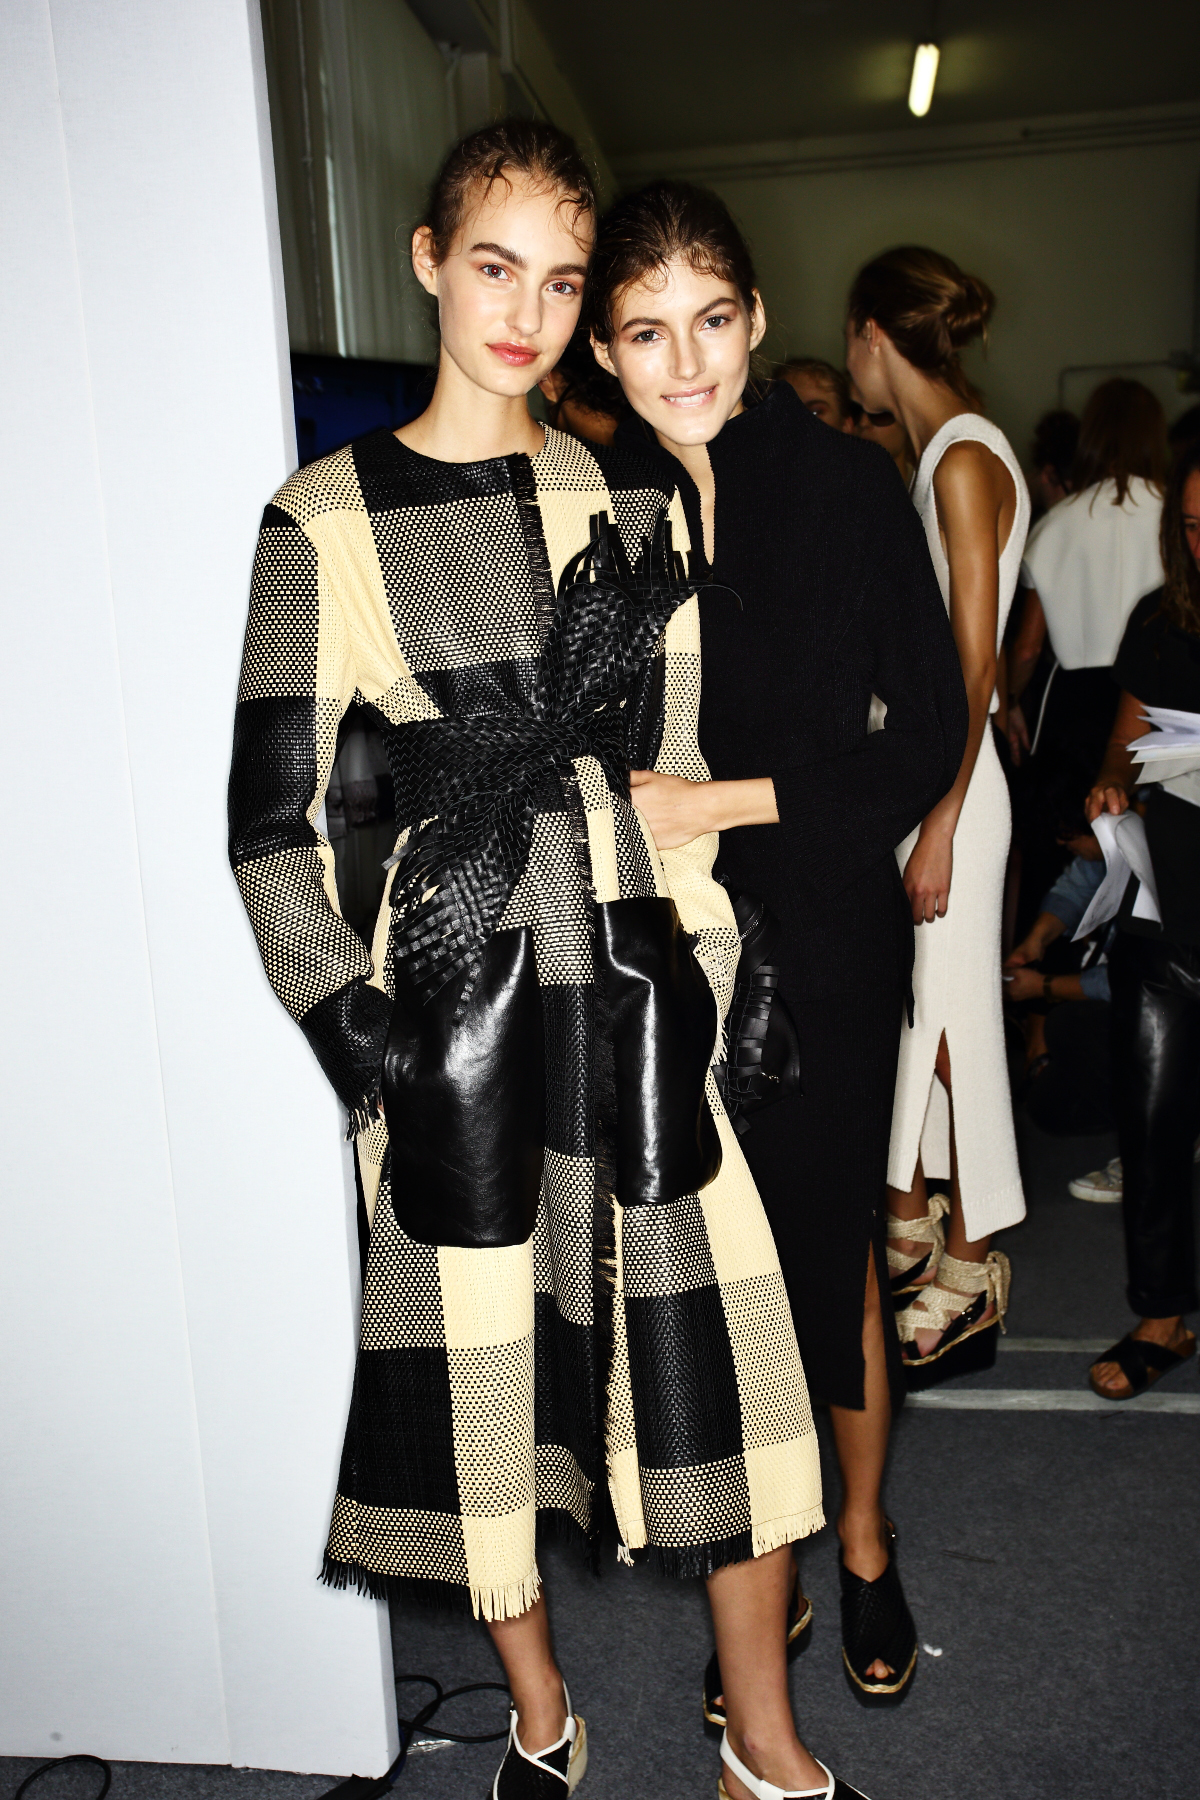 Sportmax SS15 Fashion Show Milan Backstage